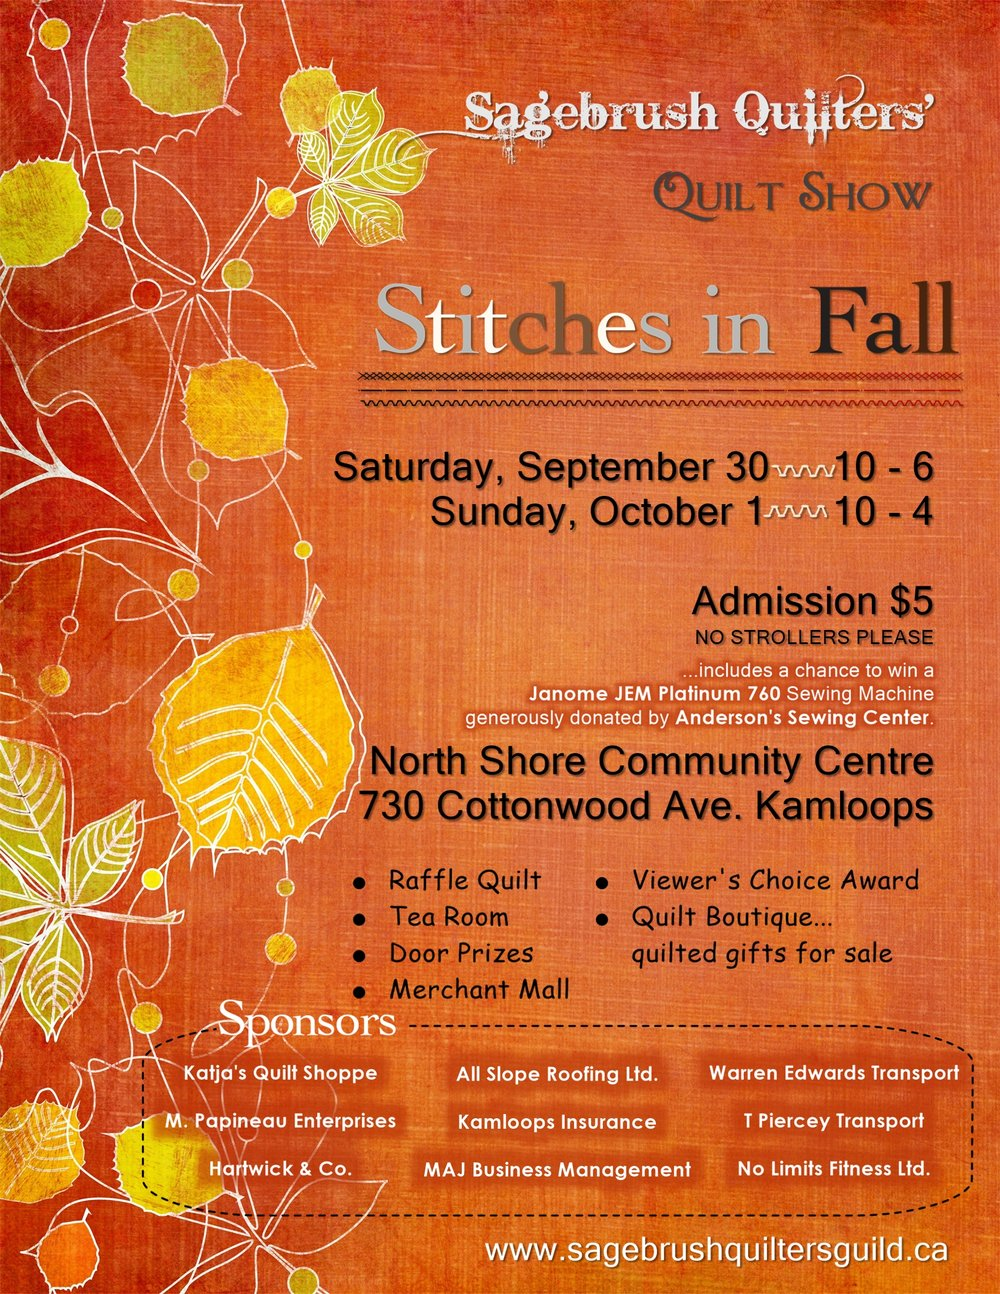 8.5x11 Quilt Show Poster - Page 001.jpg